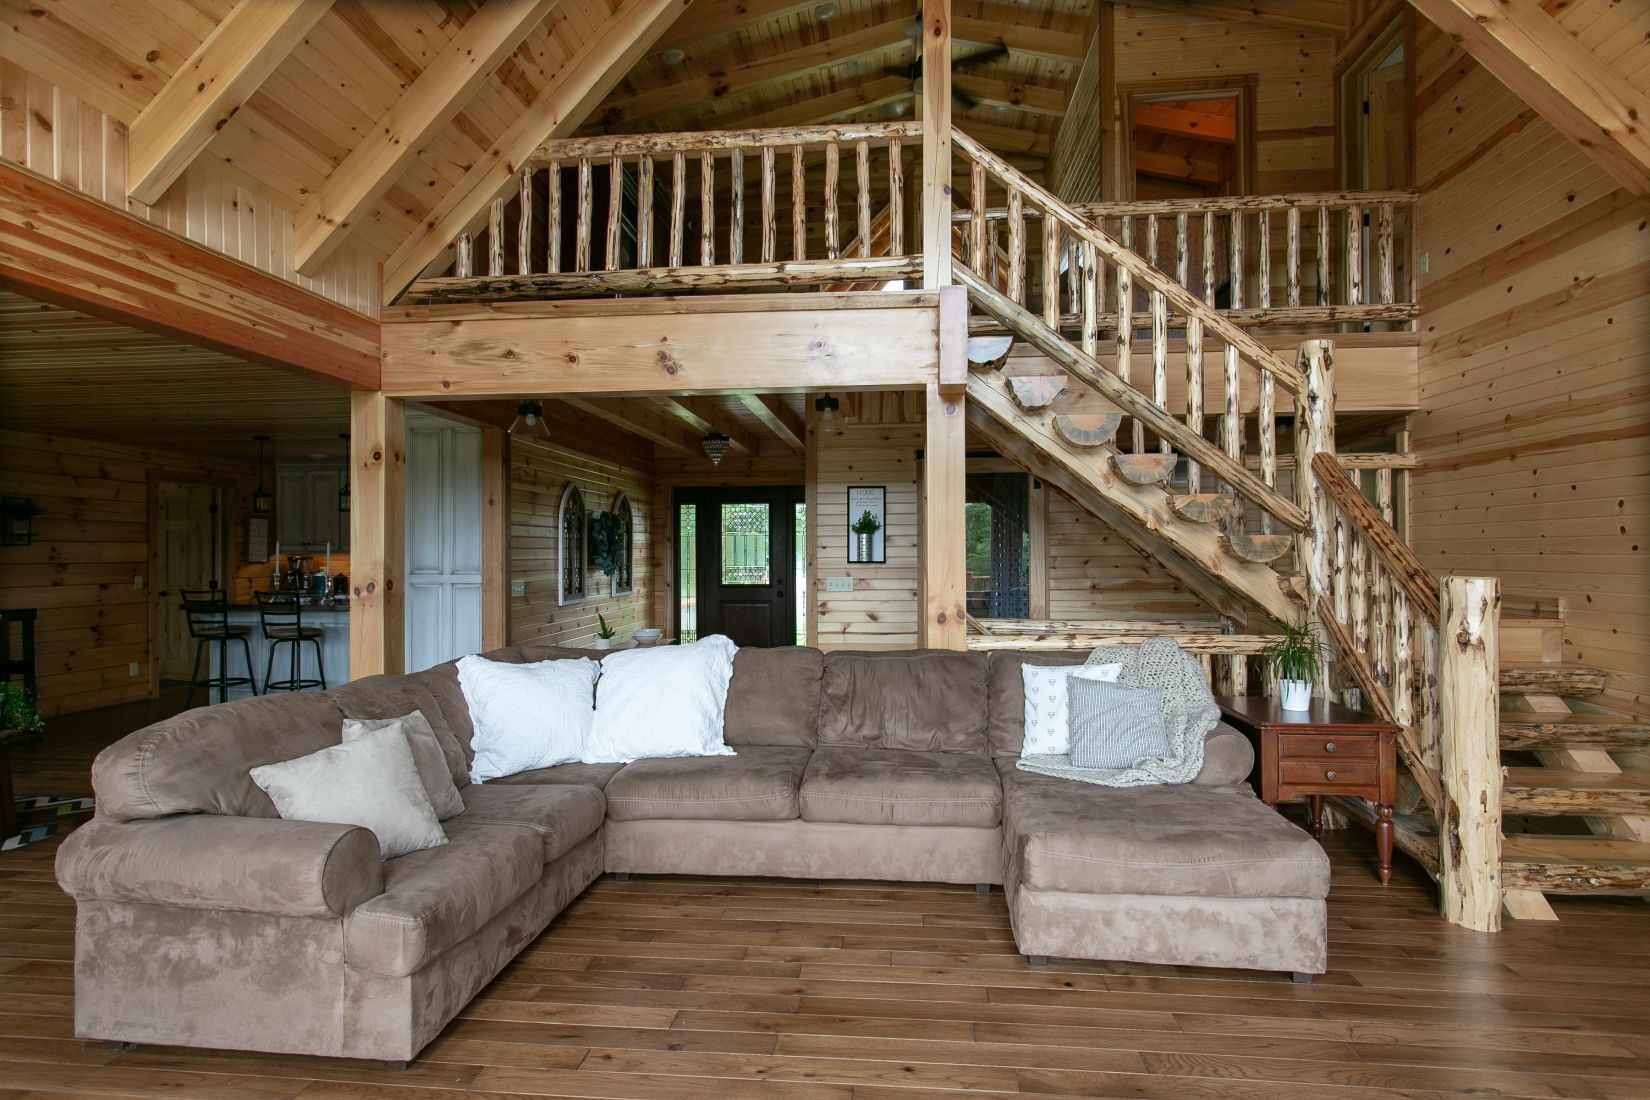 Open Floor Concept with Rustic Log Stairs and Railing